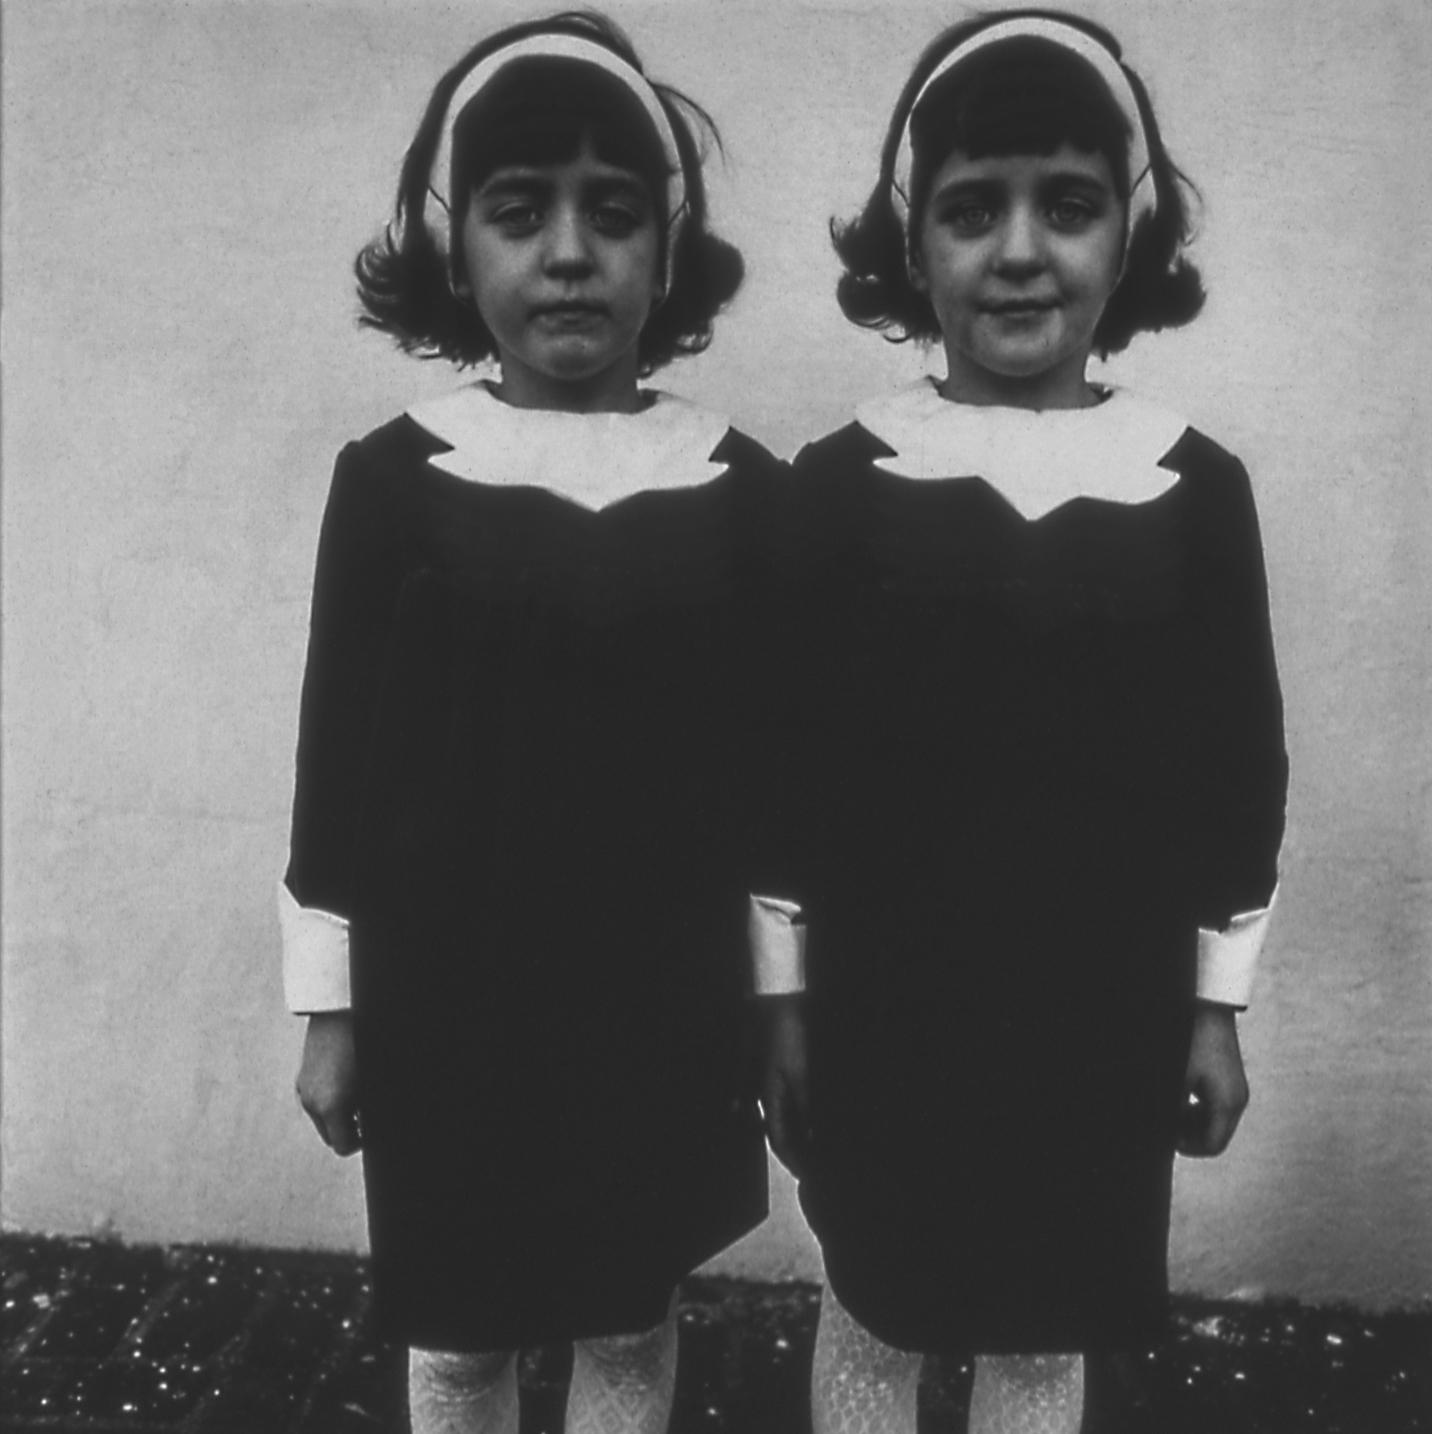 A black-and-white portrait of twins standing shoulder to shoulder. The twins are adorned in identical black dresses with white collars, white headbands, and white stockings.